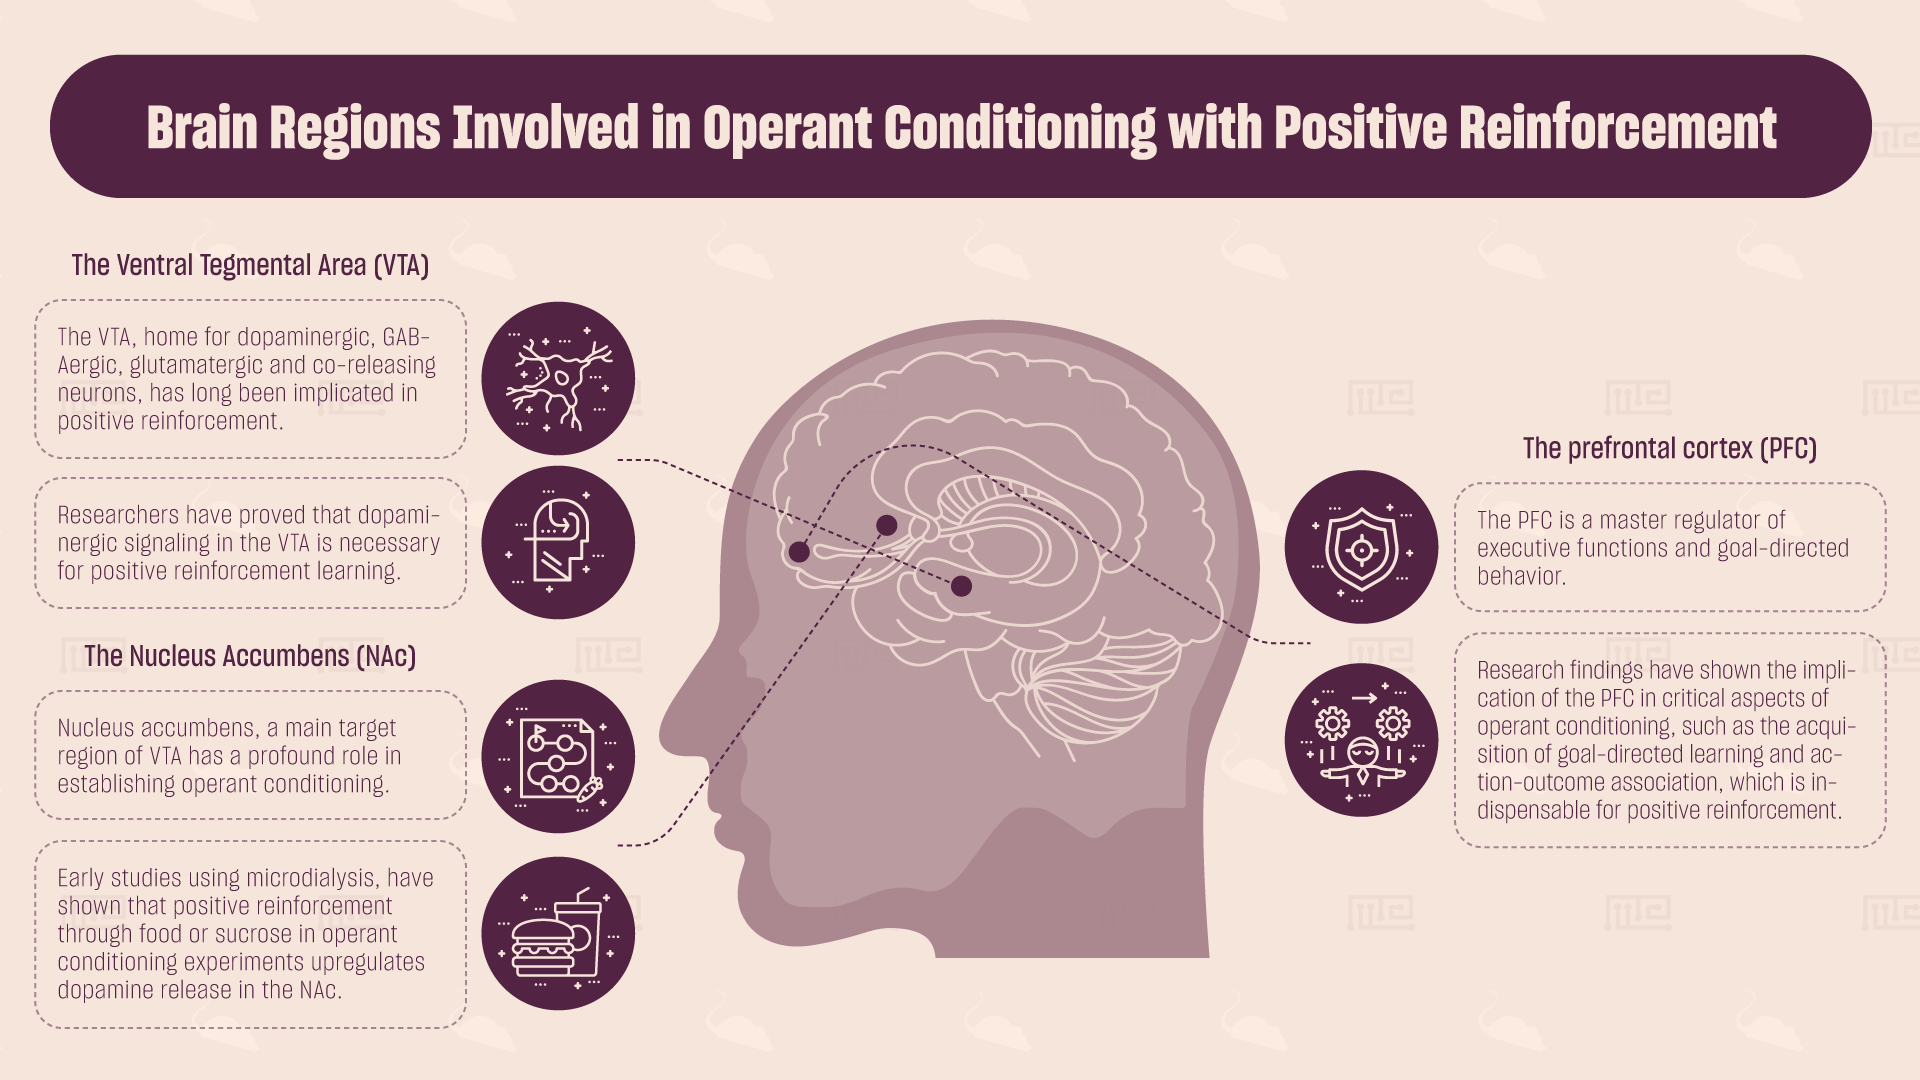 brain regions involved in operant conditioning with positive reinforcement